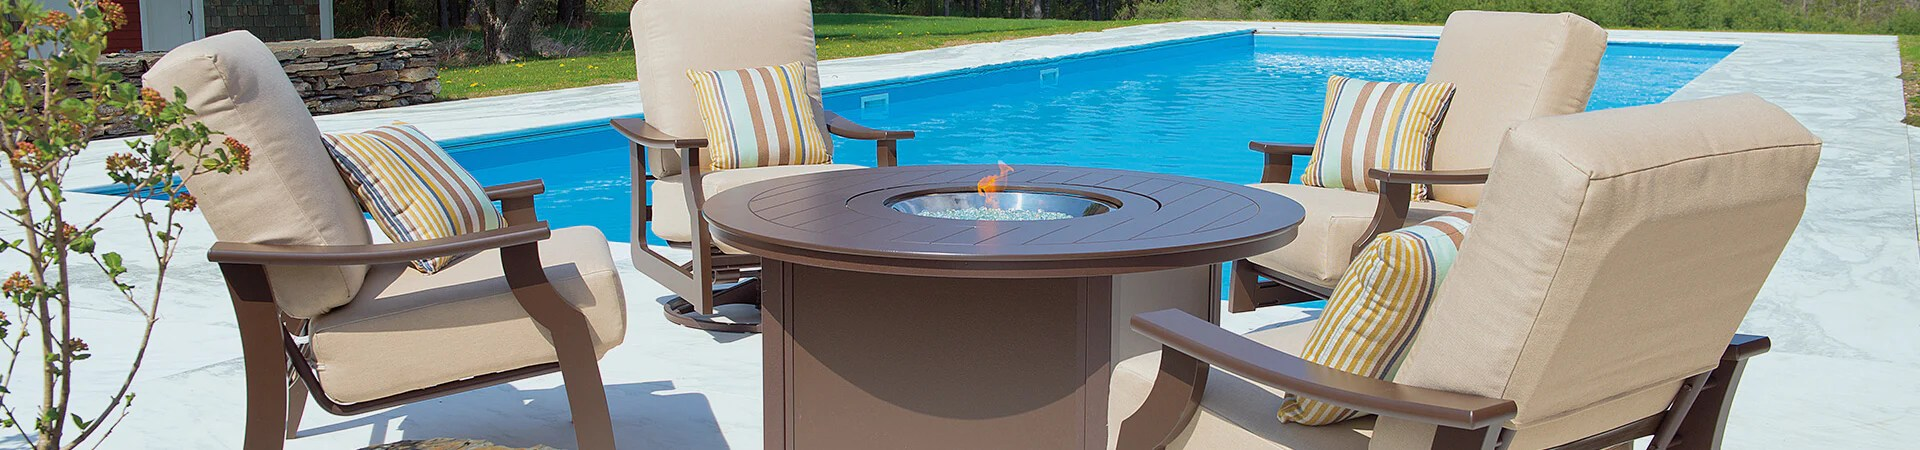 Clearance Patio Furniture Tinley Park Outlet Lansing Outlet - Garden Furniture Clearance Maidstone